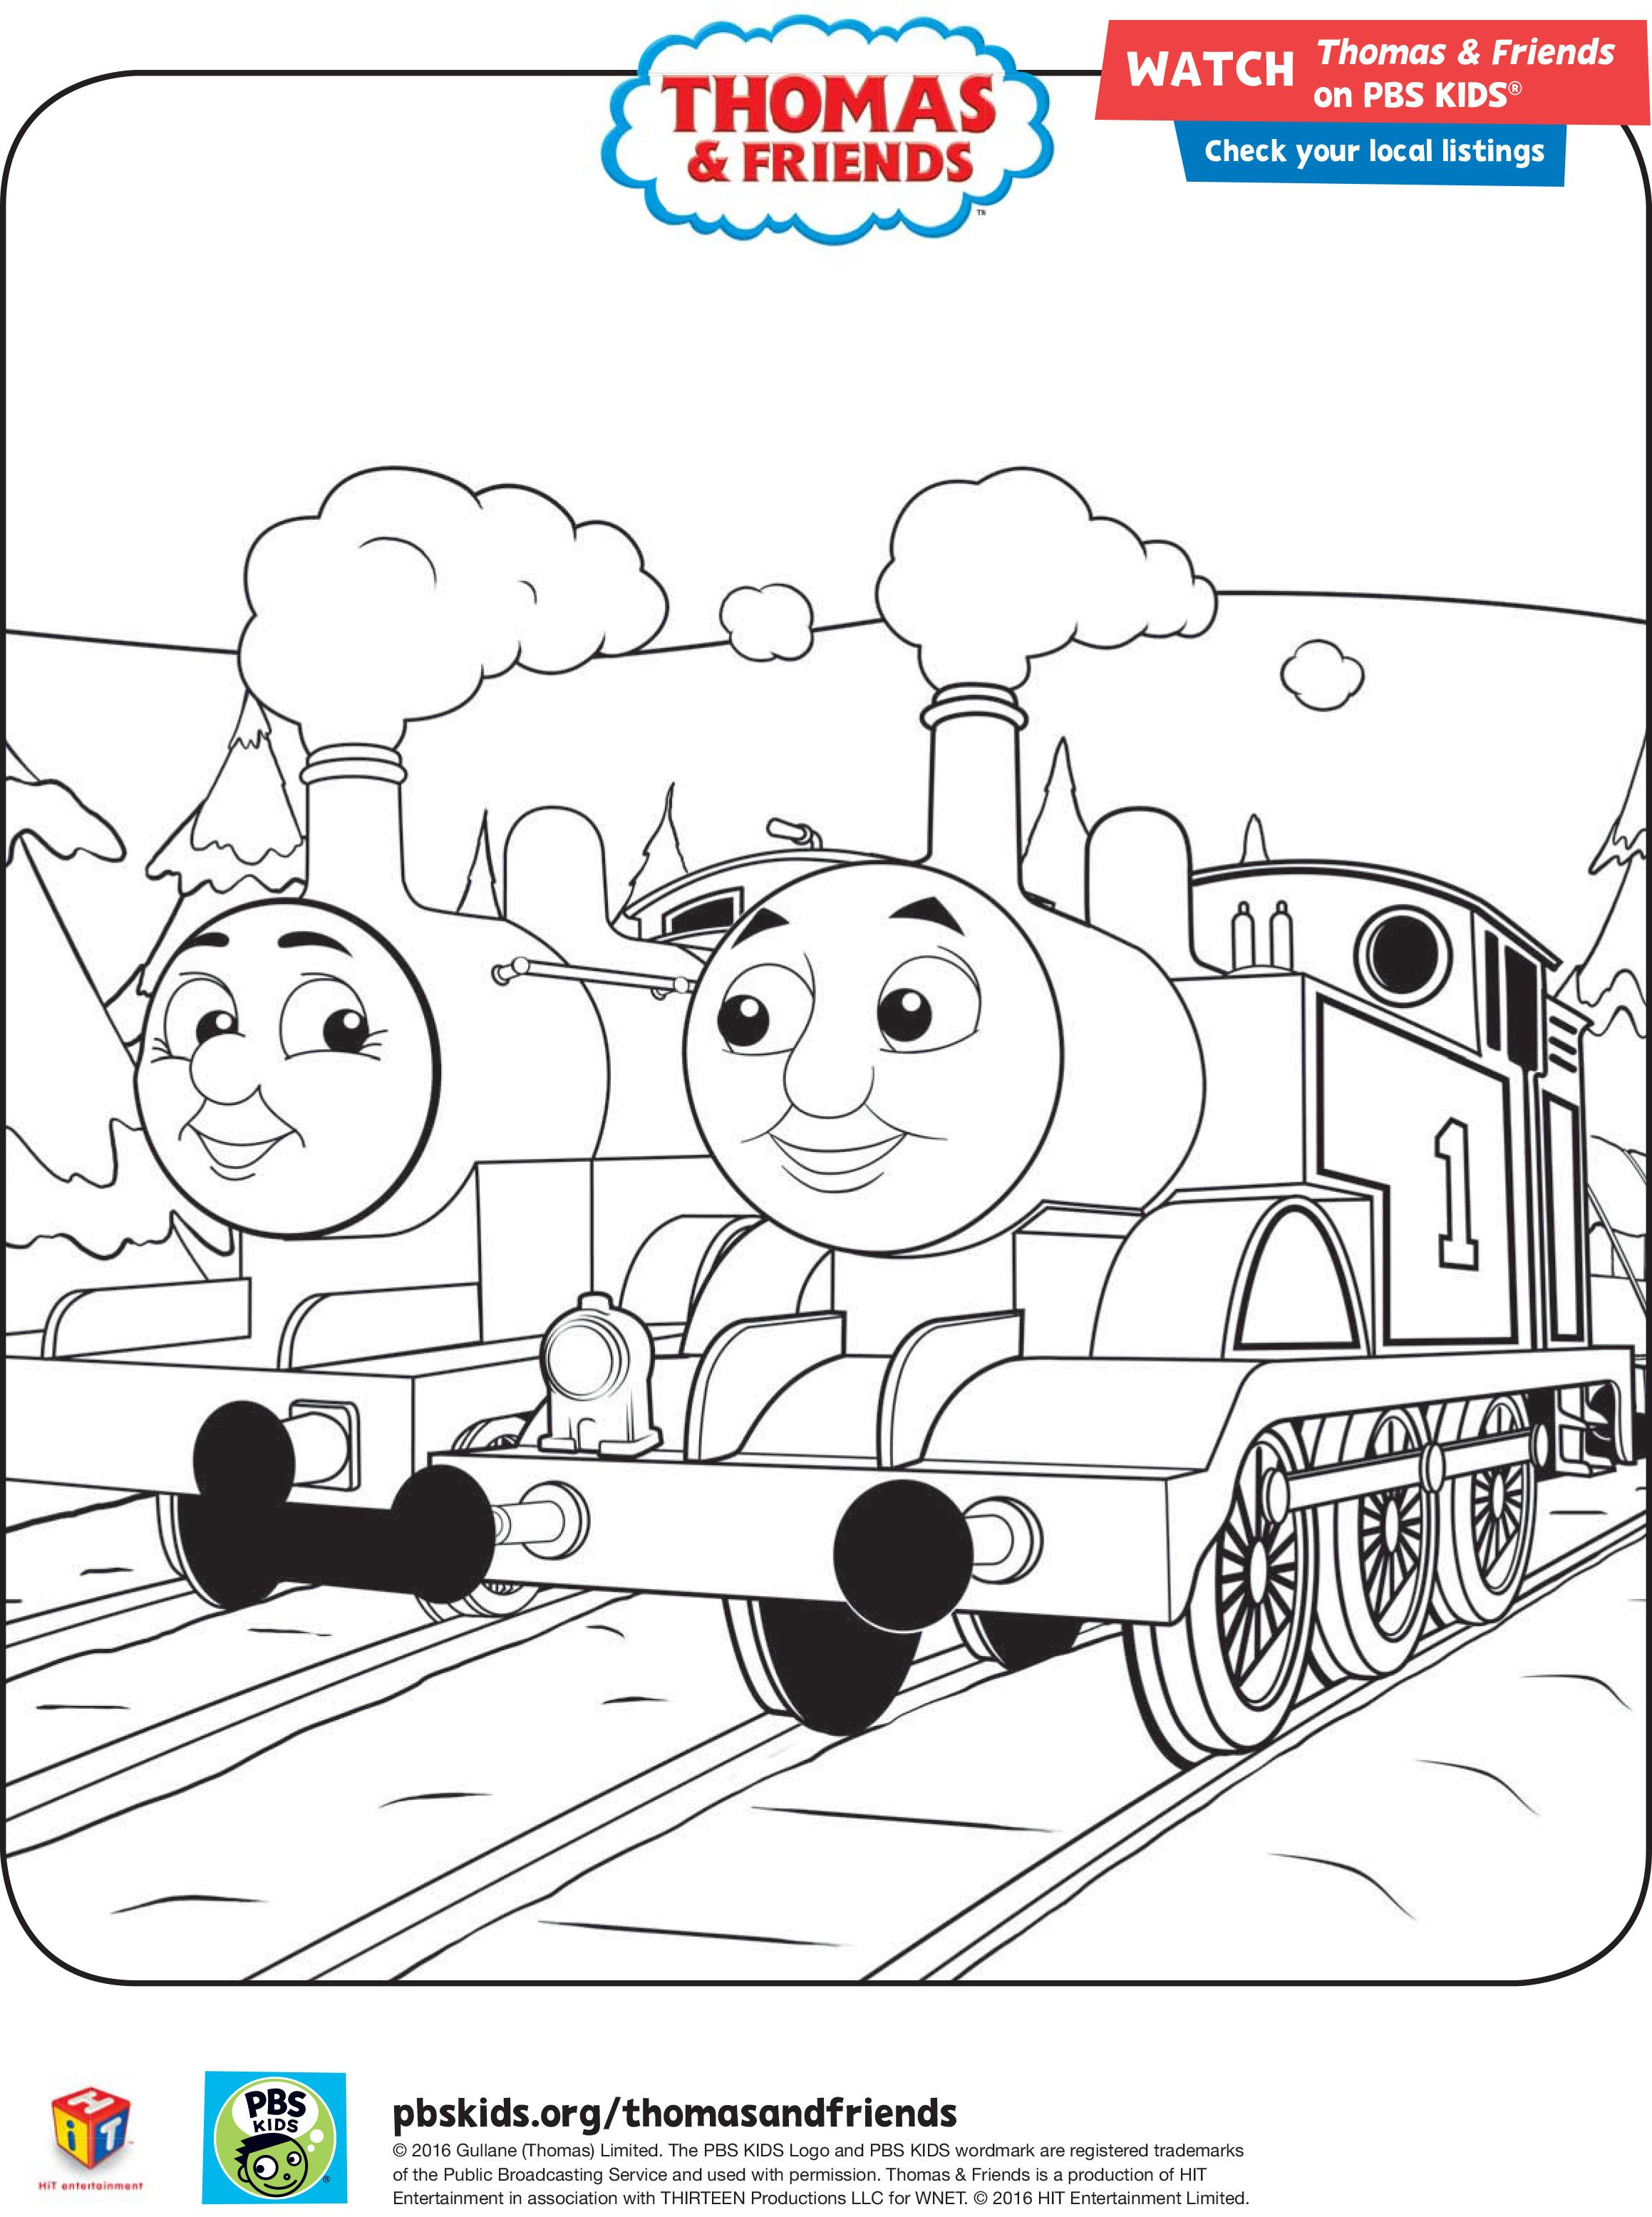 Thomas and Friends winter coloring sheets #ThomasandFriends #PBSKids ...